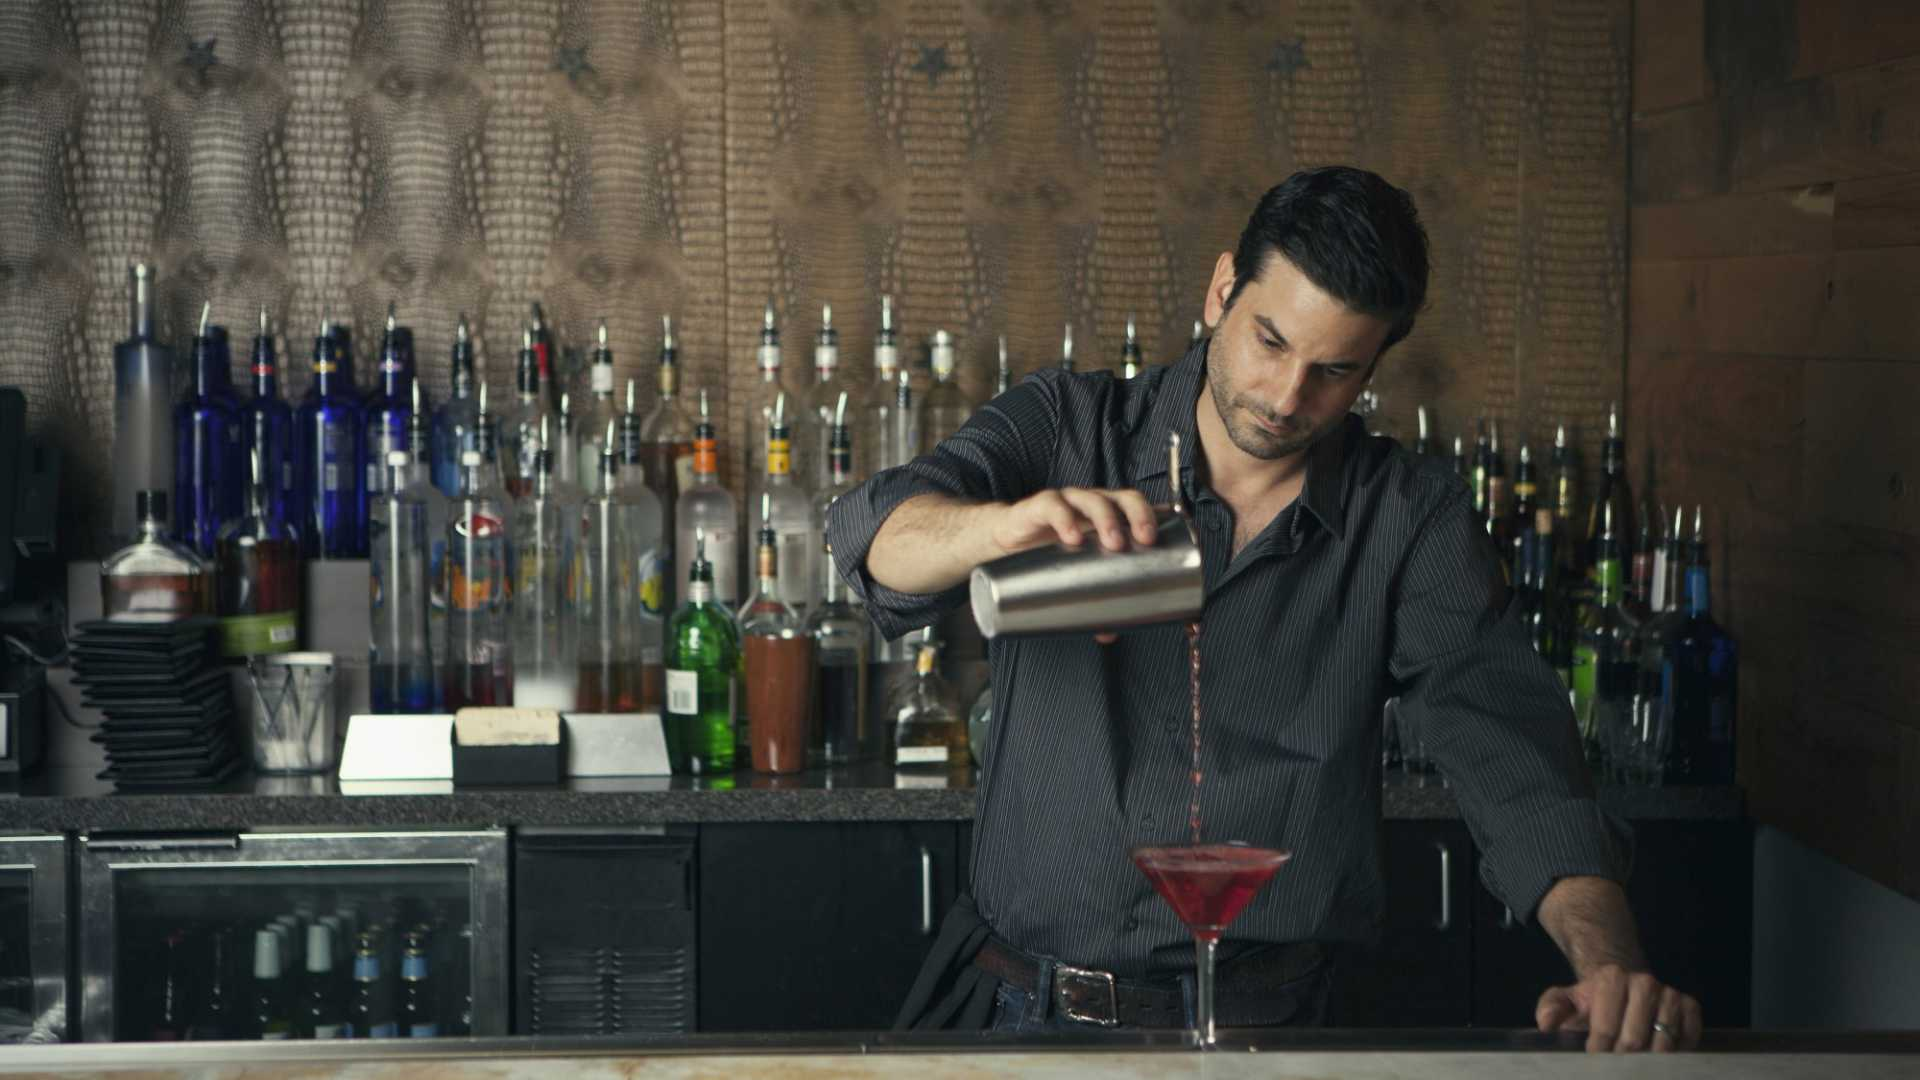 3 Marketing Lessons You Can Learn From a Bartender